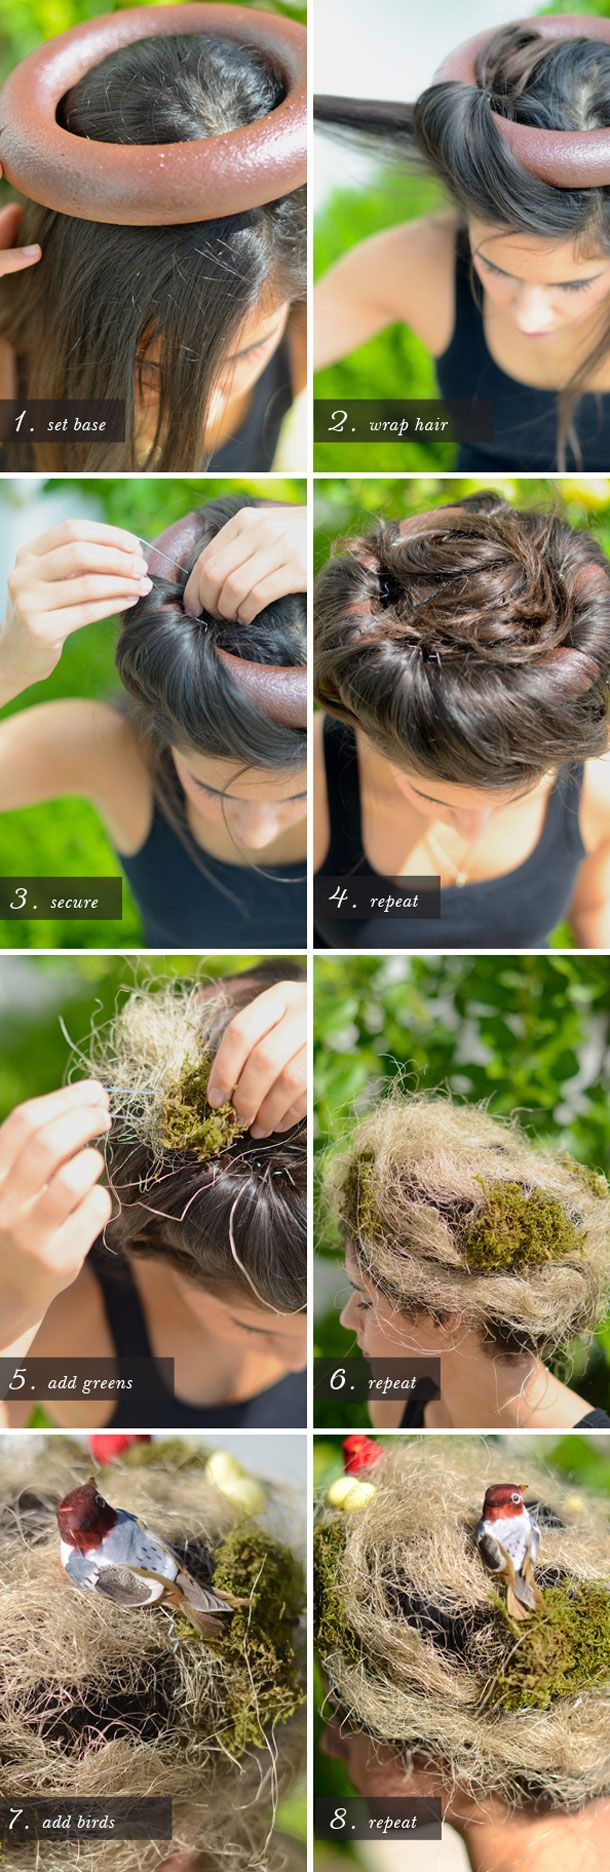 How to make birds nest hair for Halloween, Perhaps good for going as Mother Nature?